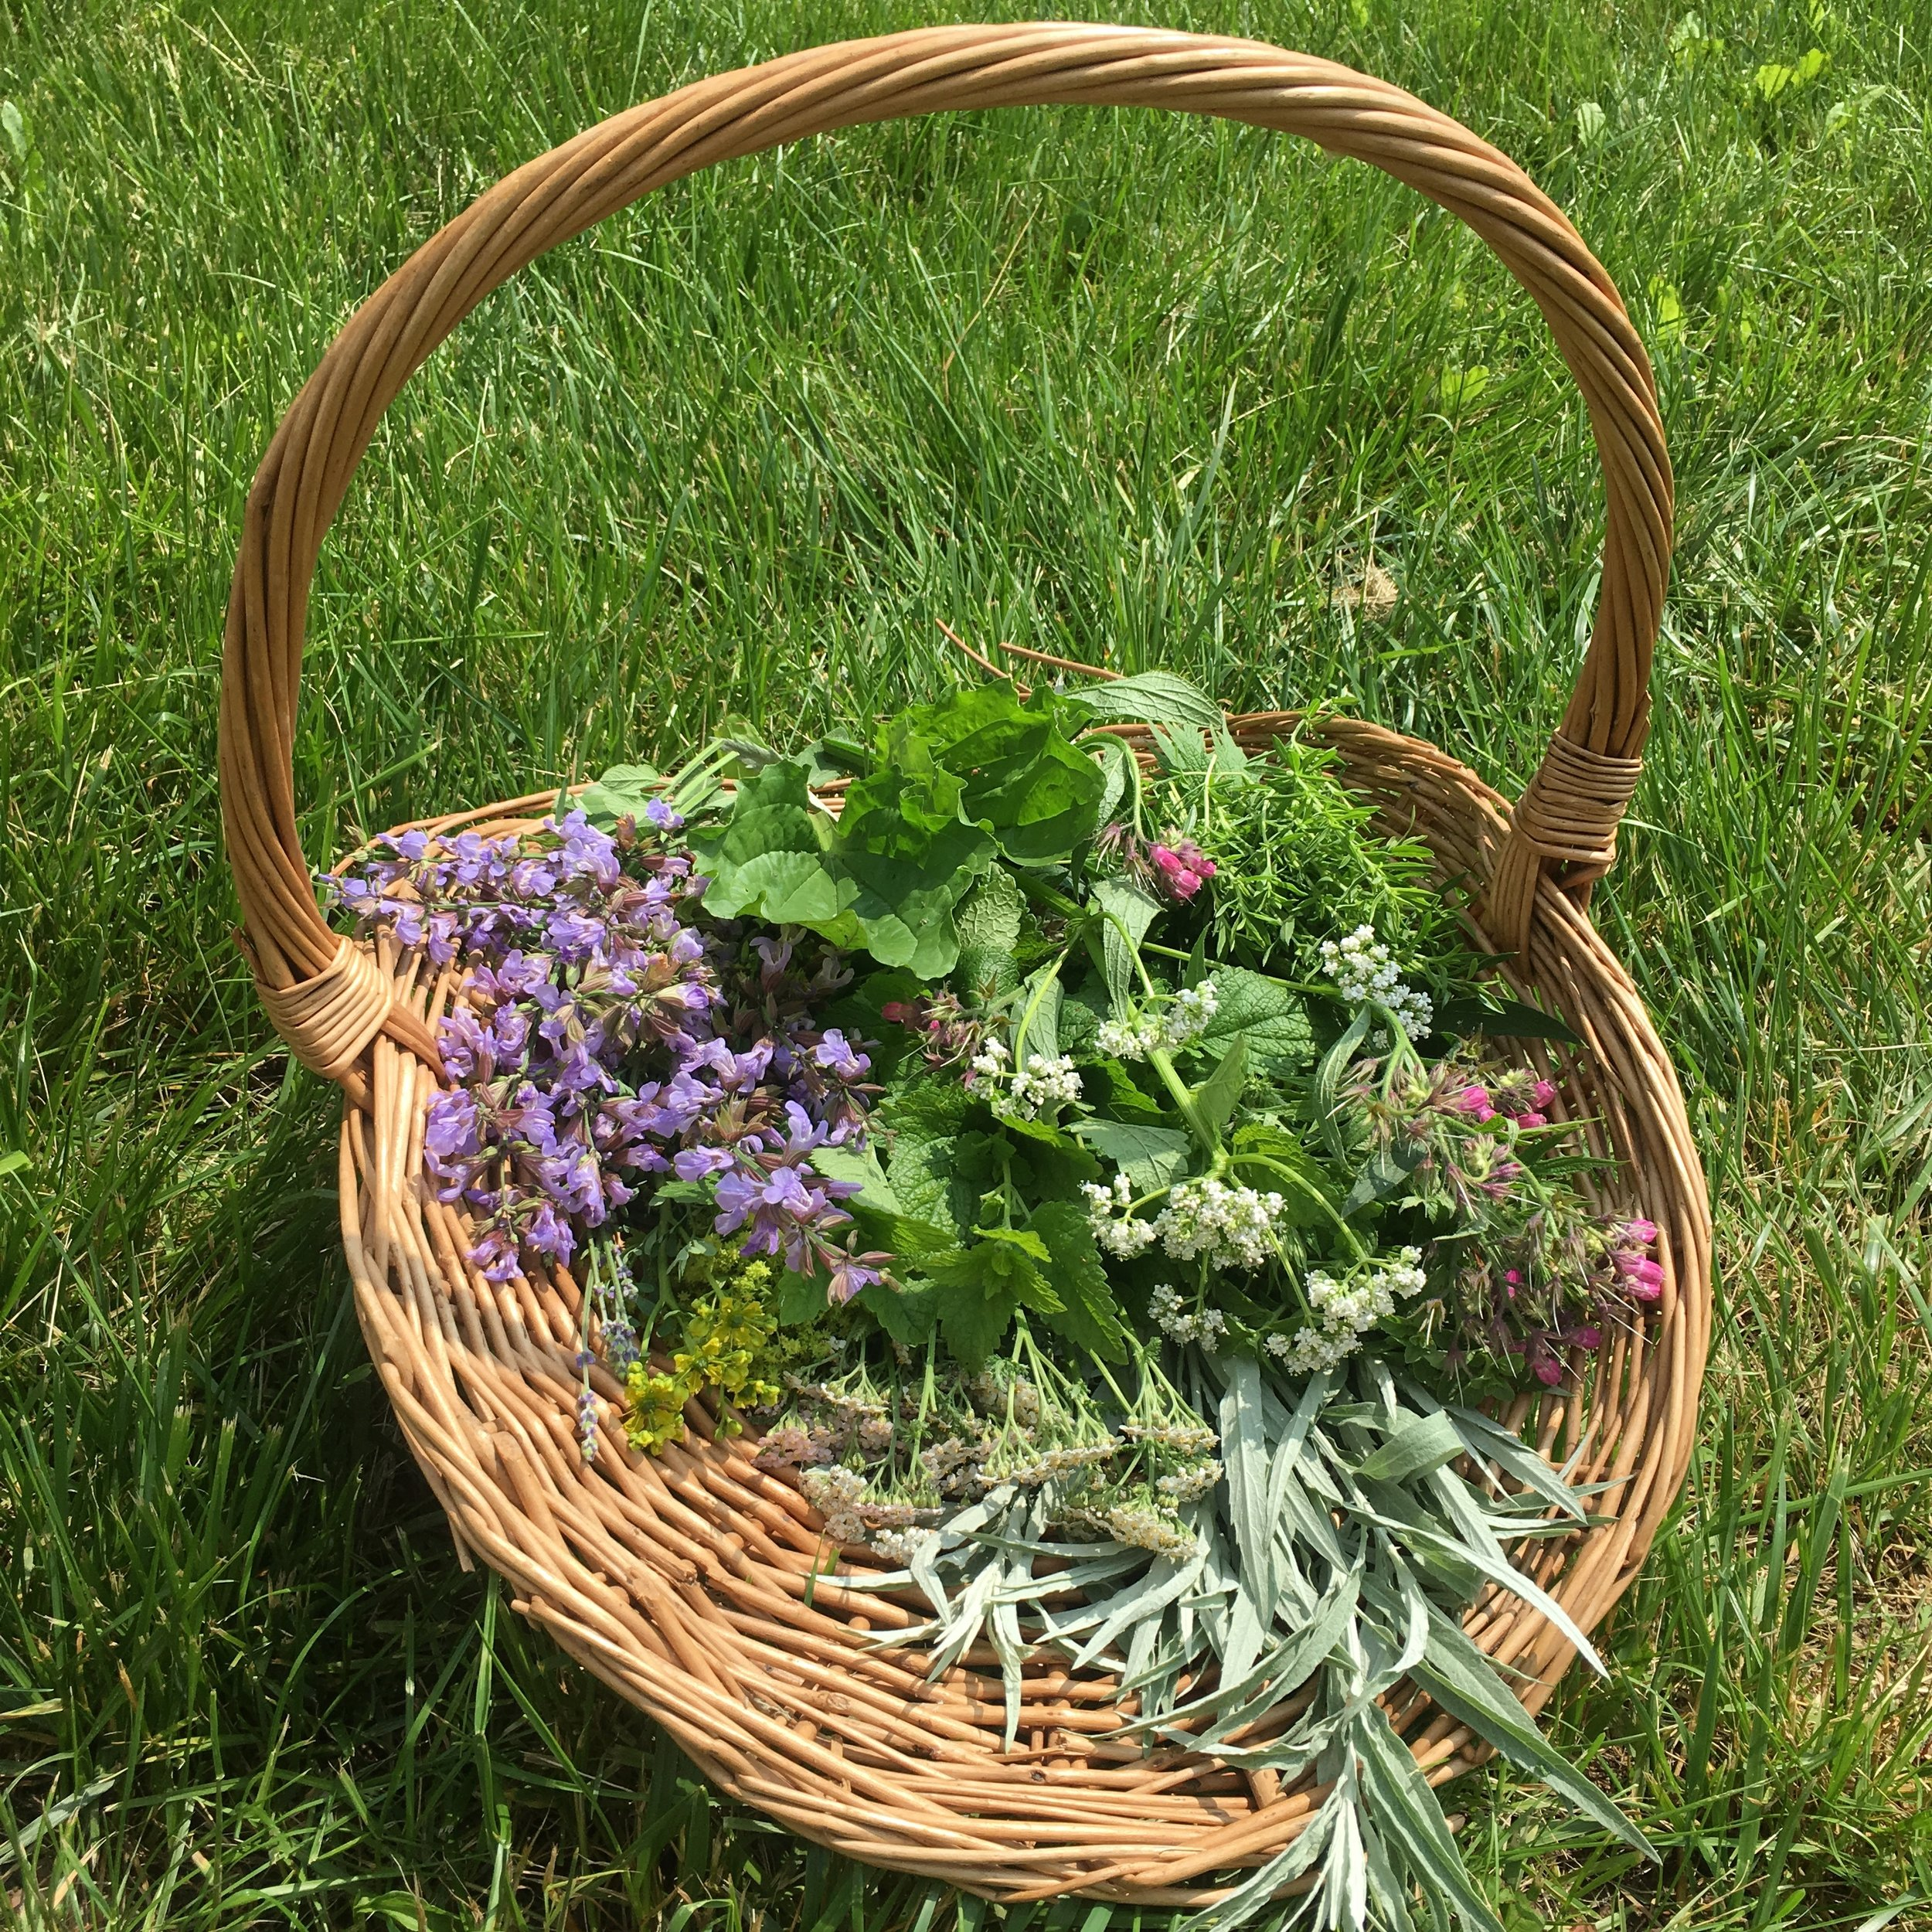 We harvest into baskets. It's pretty.